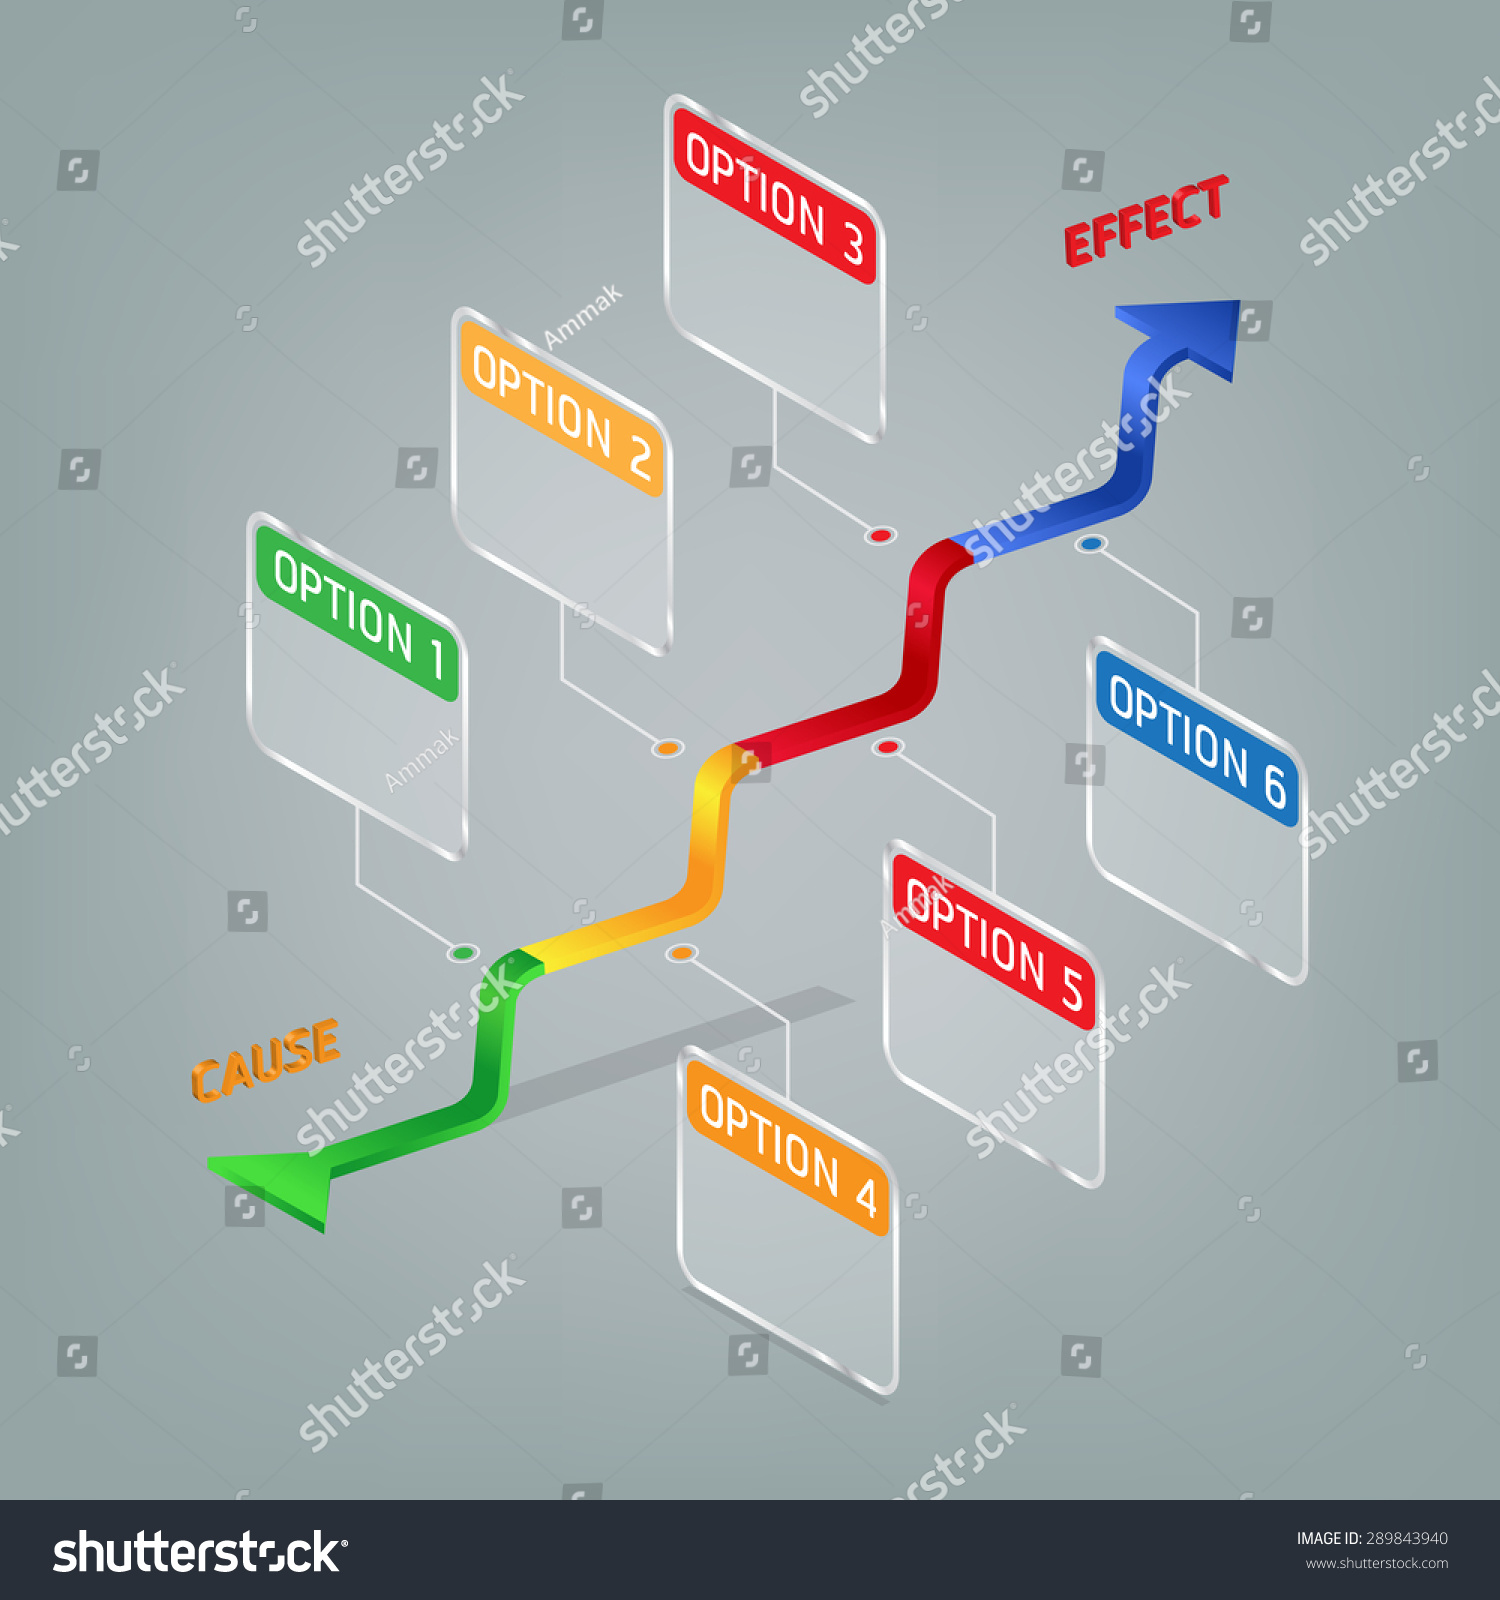 Cause Effect Diagram Option Step Infographic Stock Vector (Royalty ...